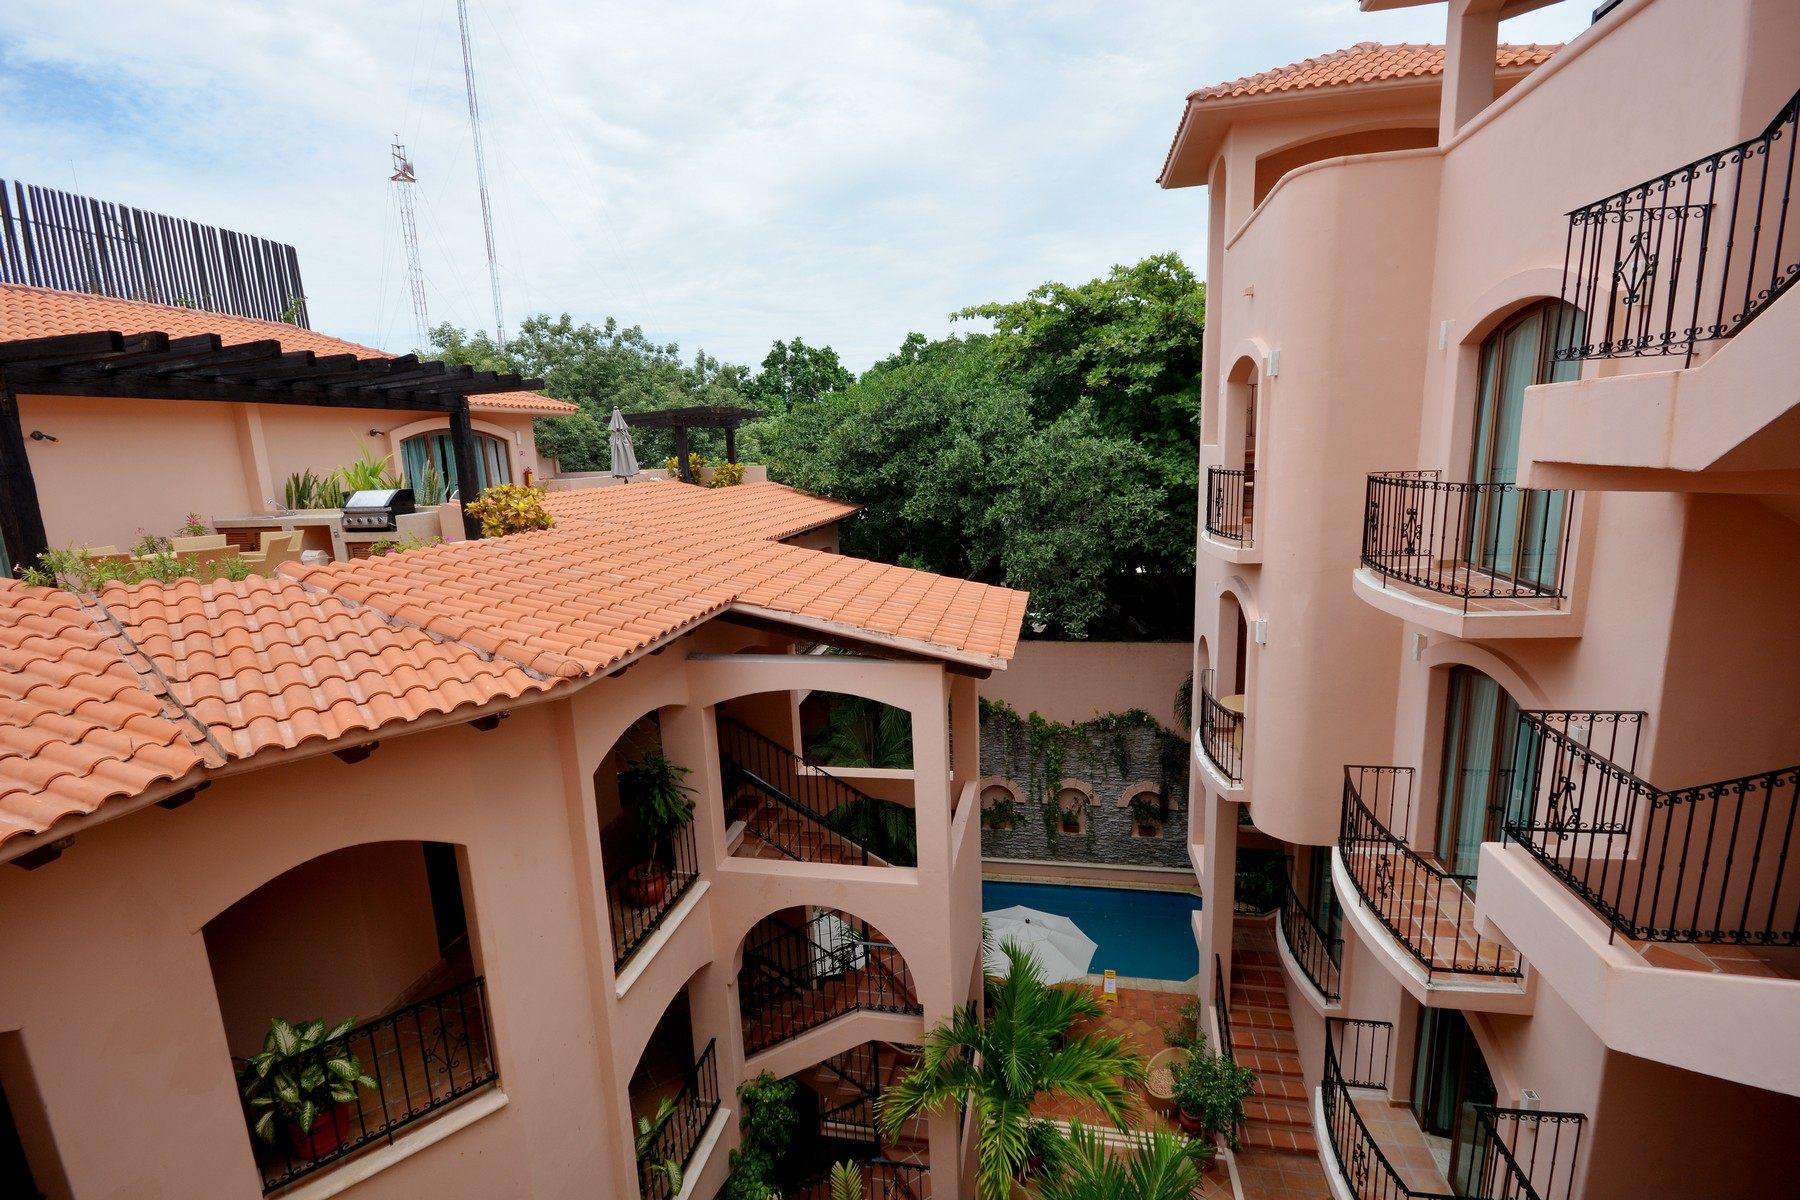 Additional photo for property listing at DELUXE PENTHOUSE IN THE BEST LOCATION Deluxe penthouse in the best location Calle 16 Norte Bis entre 5a Ave y 1a Ave Playa Del Carmen, Quintana Roo 77710 Mexico